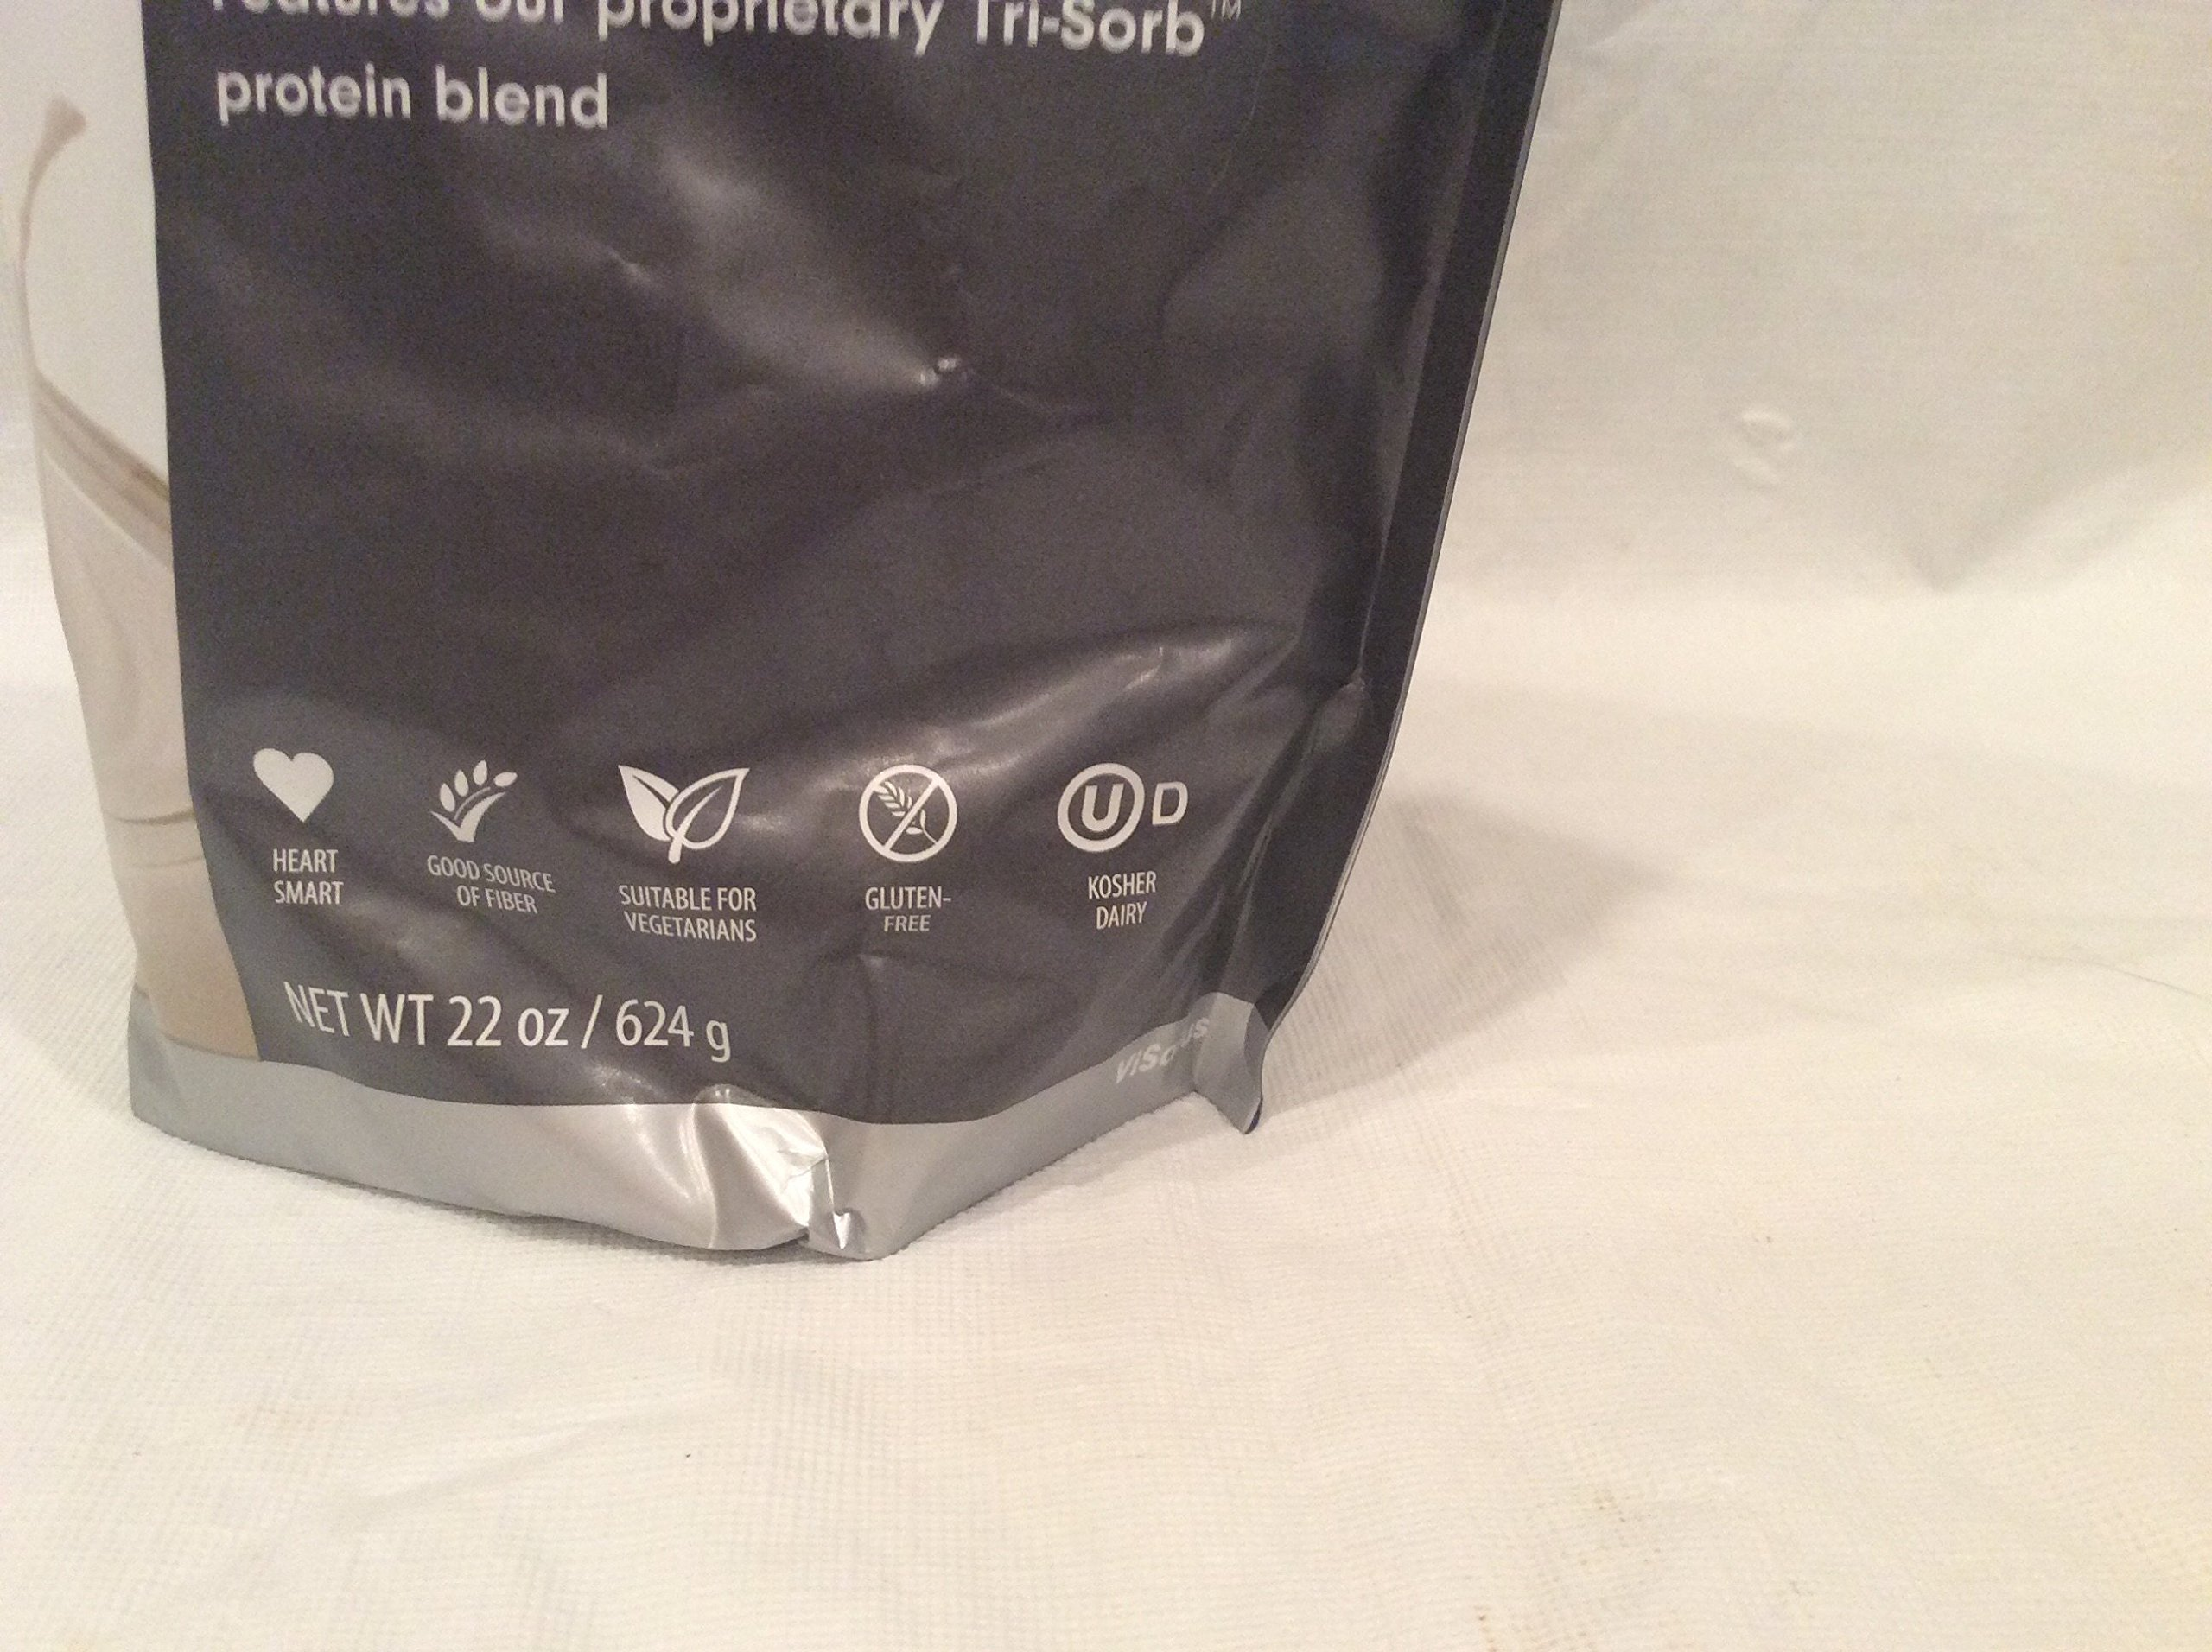 Visalus VI-Shape Nutritional Shake Mix Sweet Cream Flavor 22 0z (2 Bags NEW Vi Packaging) by ViSalus (Image #1)